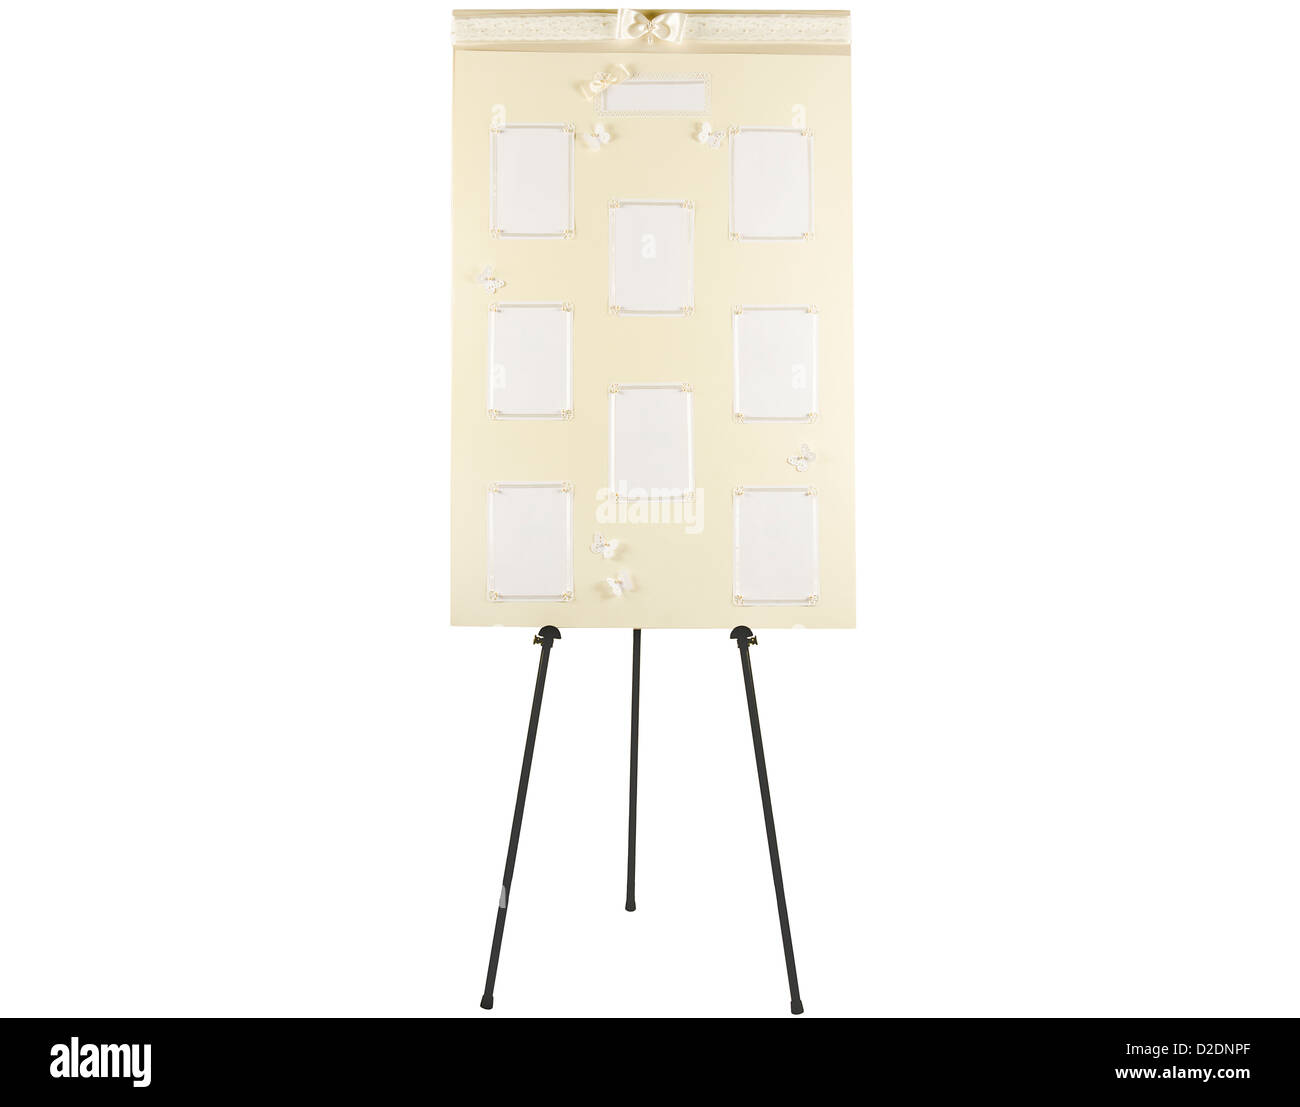 wedding seating plan board on stand with blank spaces for names